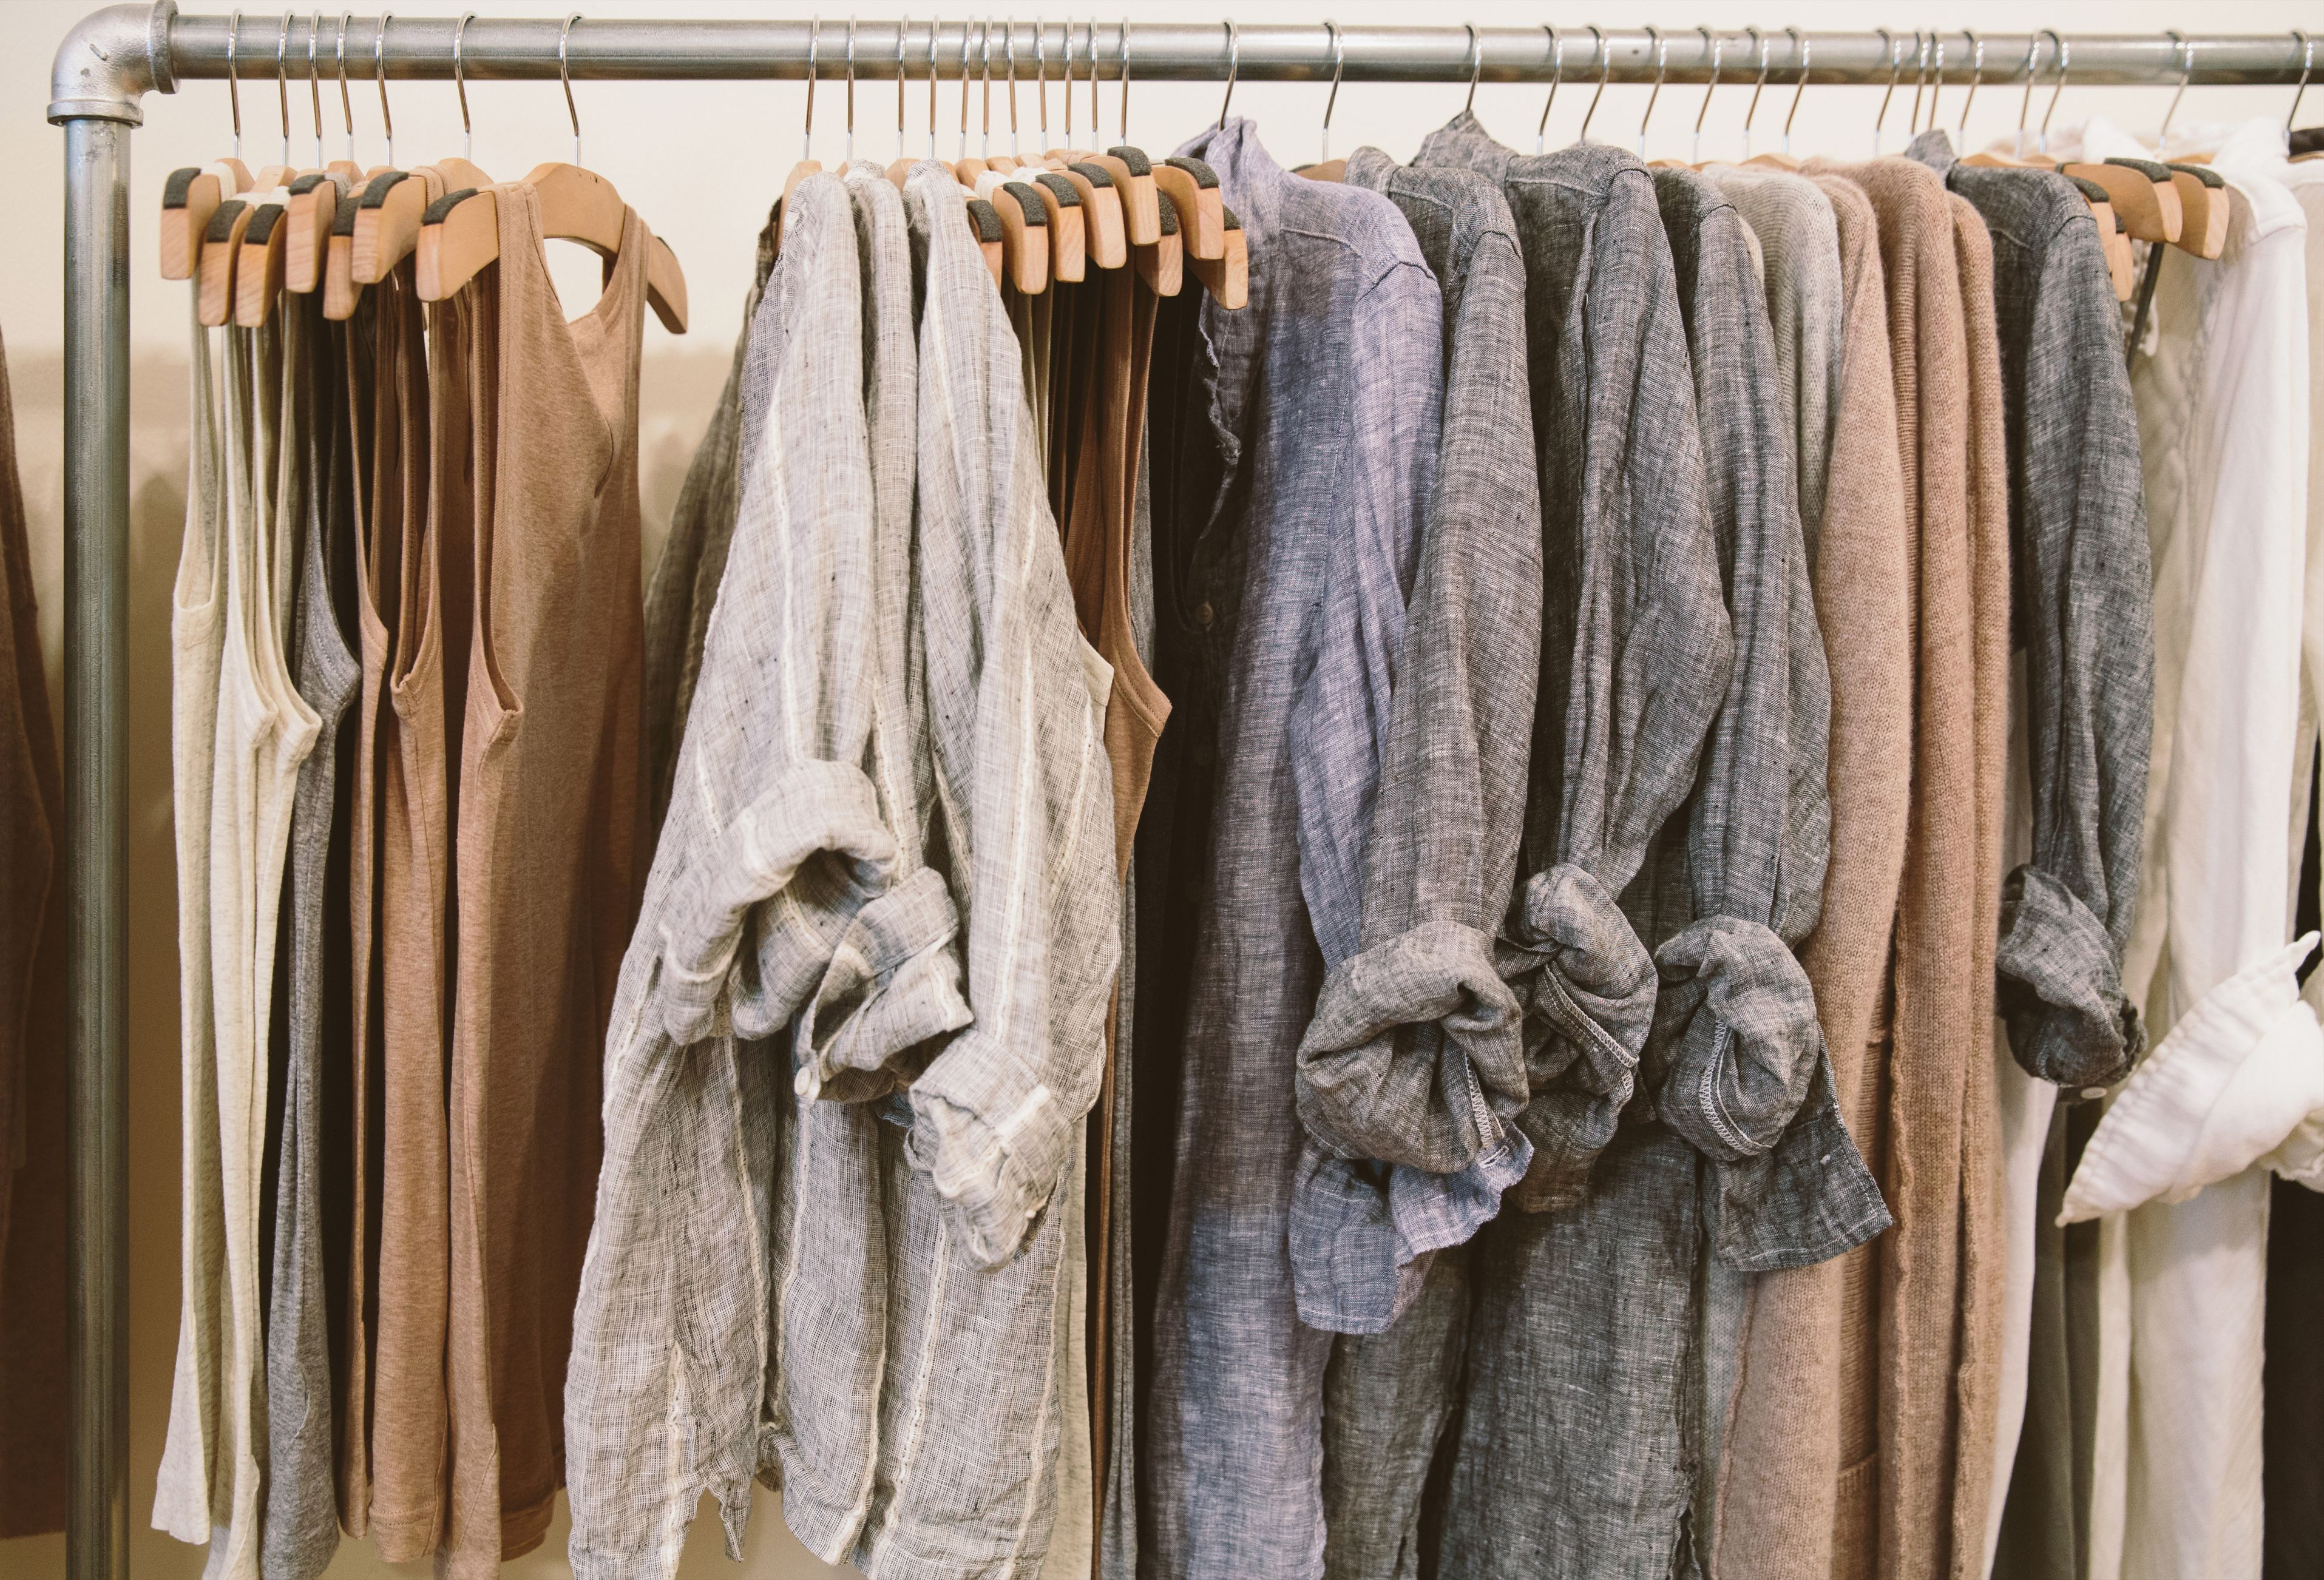 How to wash and remove stains on linen clothes - How to get exterior paint out of clothes ...